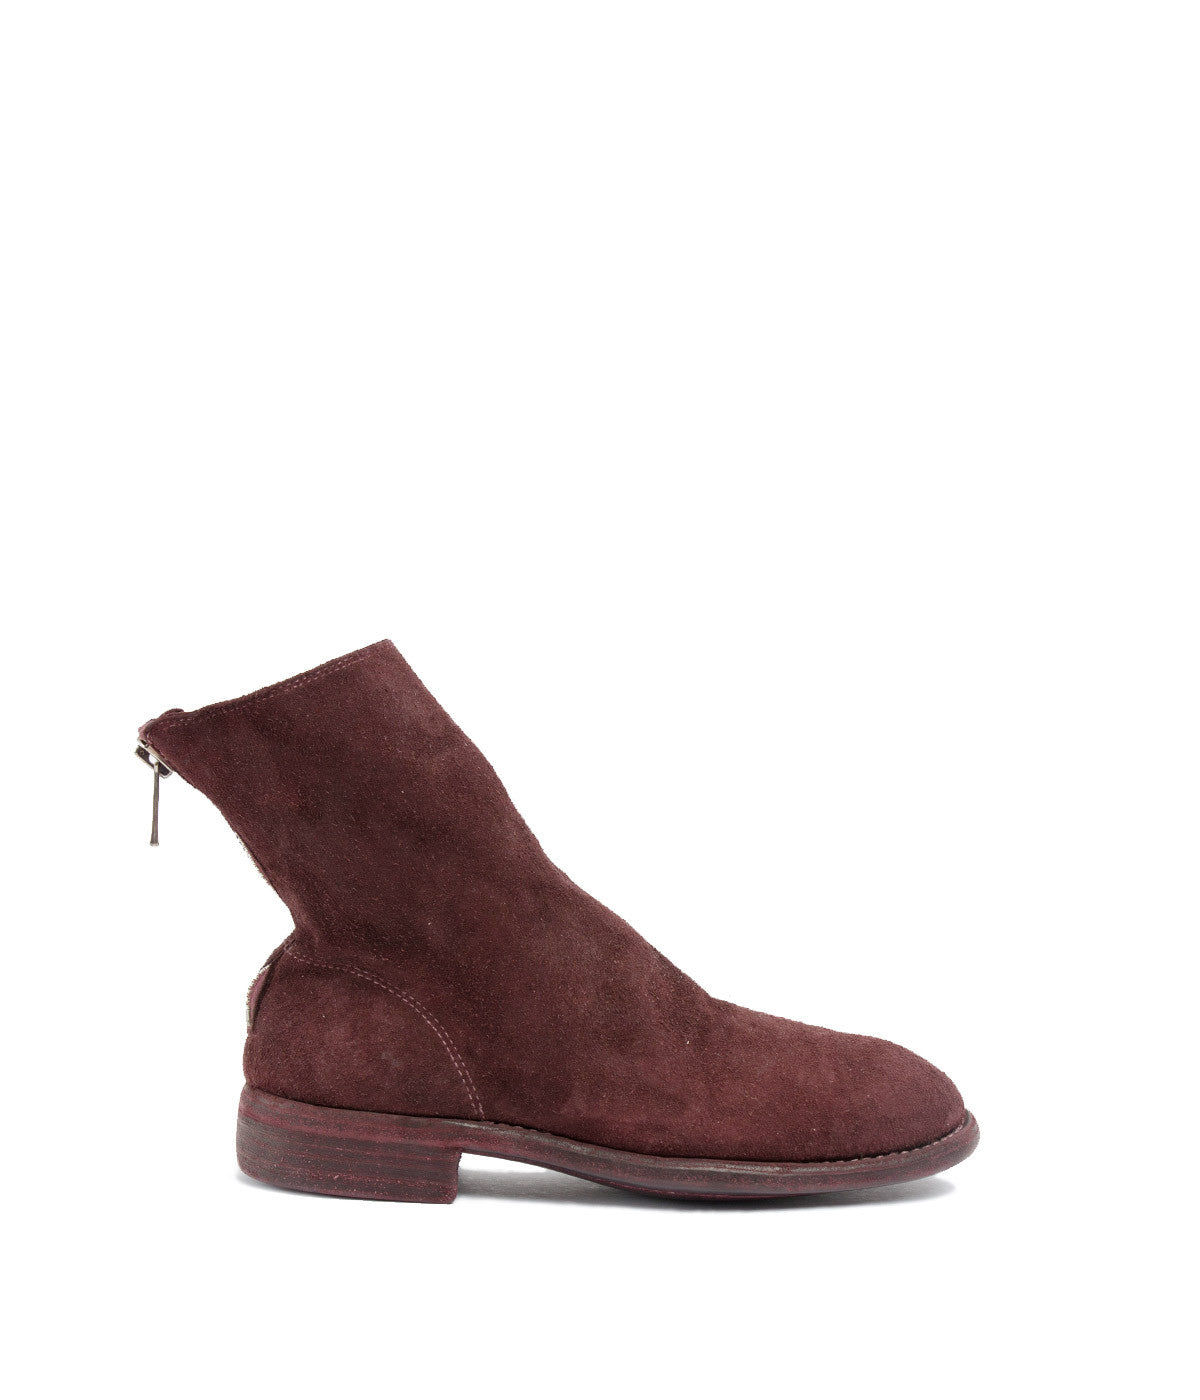 Back Zip Burgundy Suede Ankle Boots